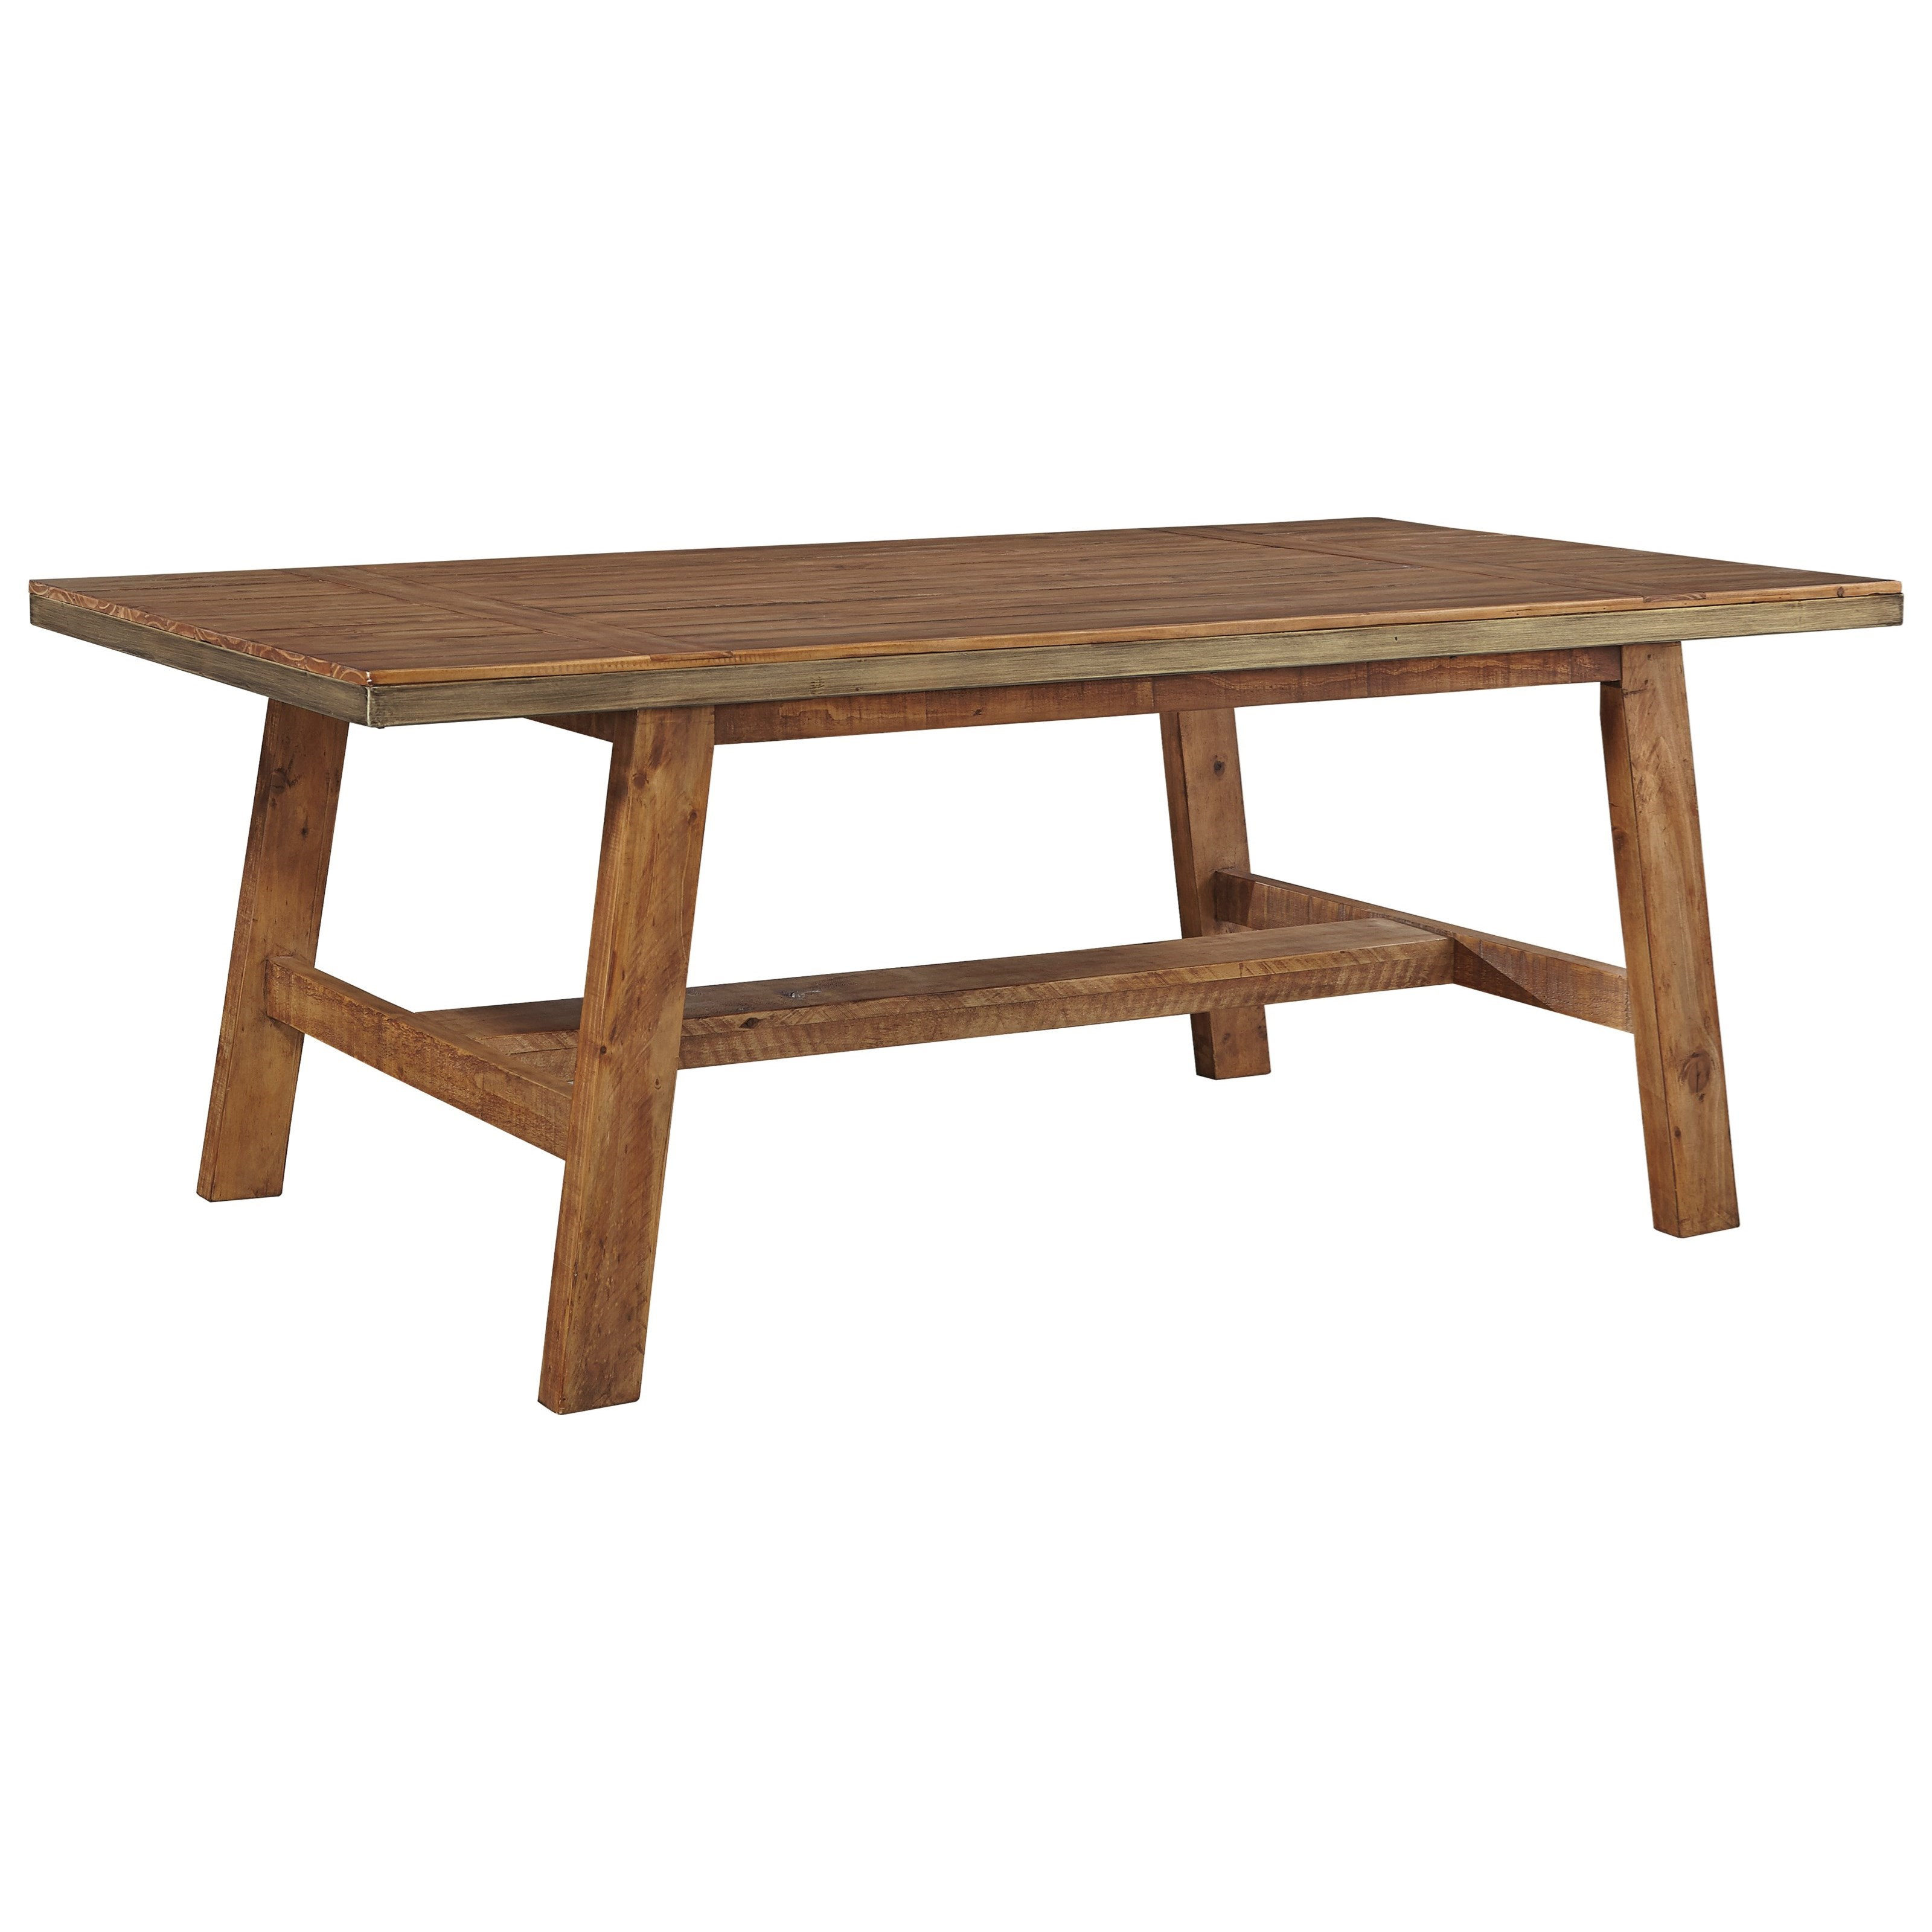 Solid Wood Rectangular Dining Room Table with Trestle Base Plank